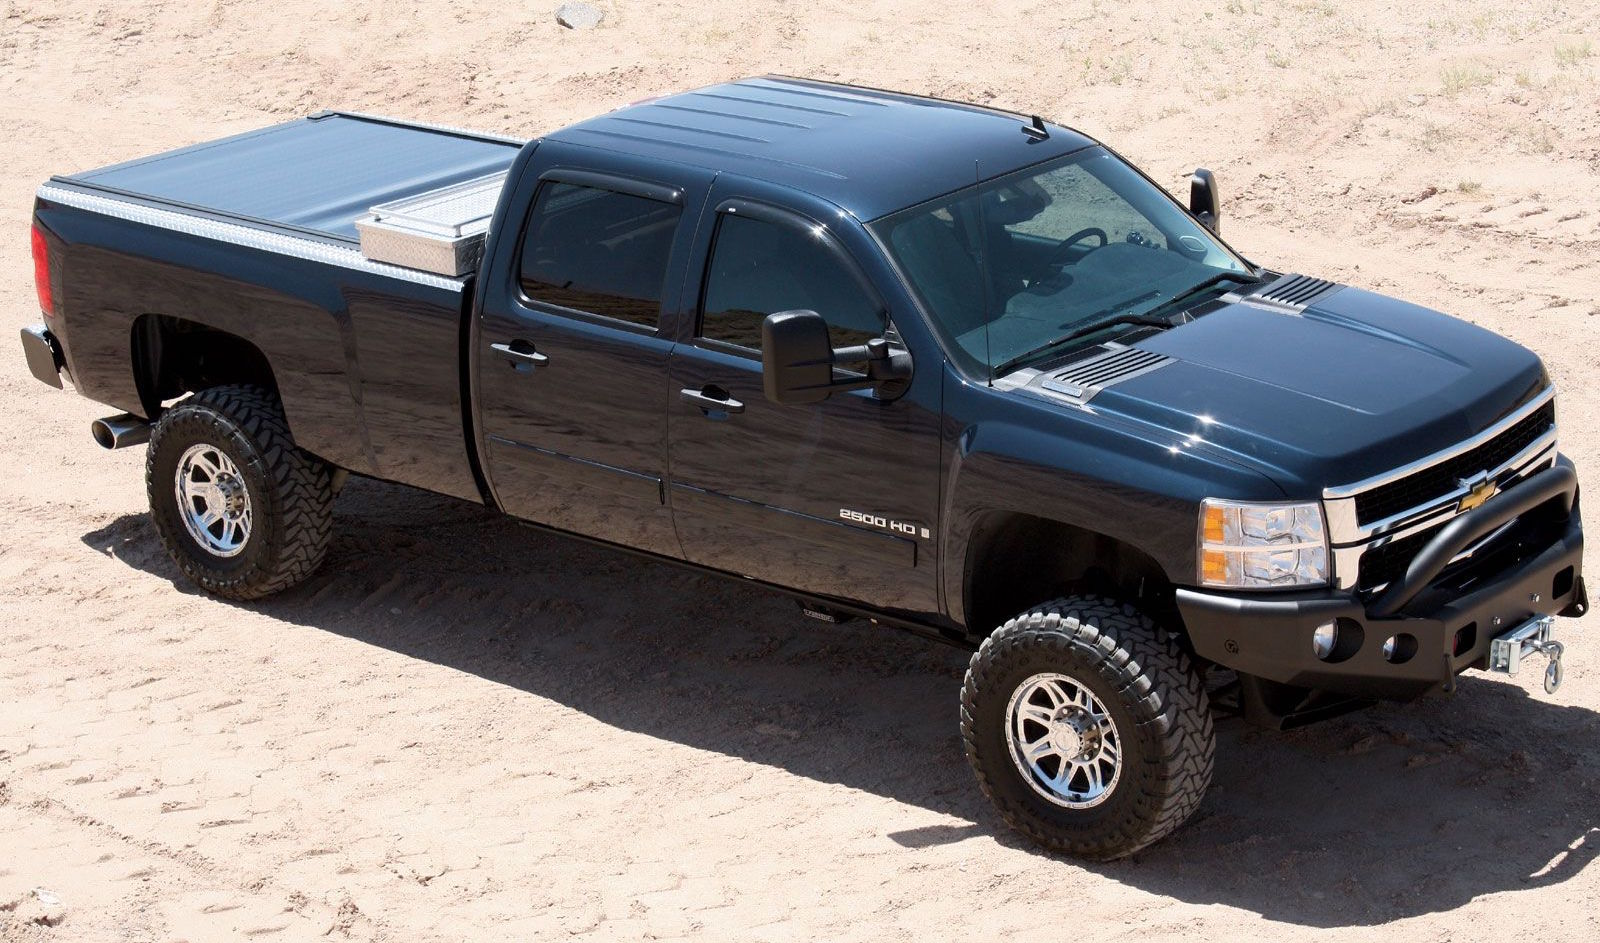 Lifted Black 2007 Used Chevy Silverado 2500HD from above in a sand put